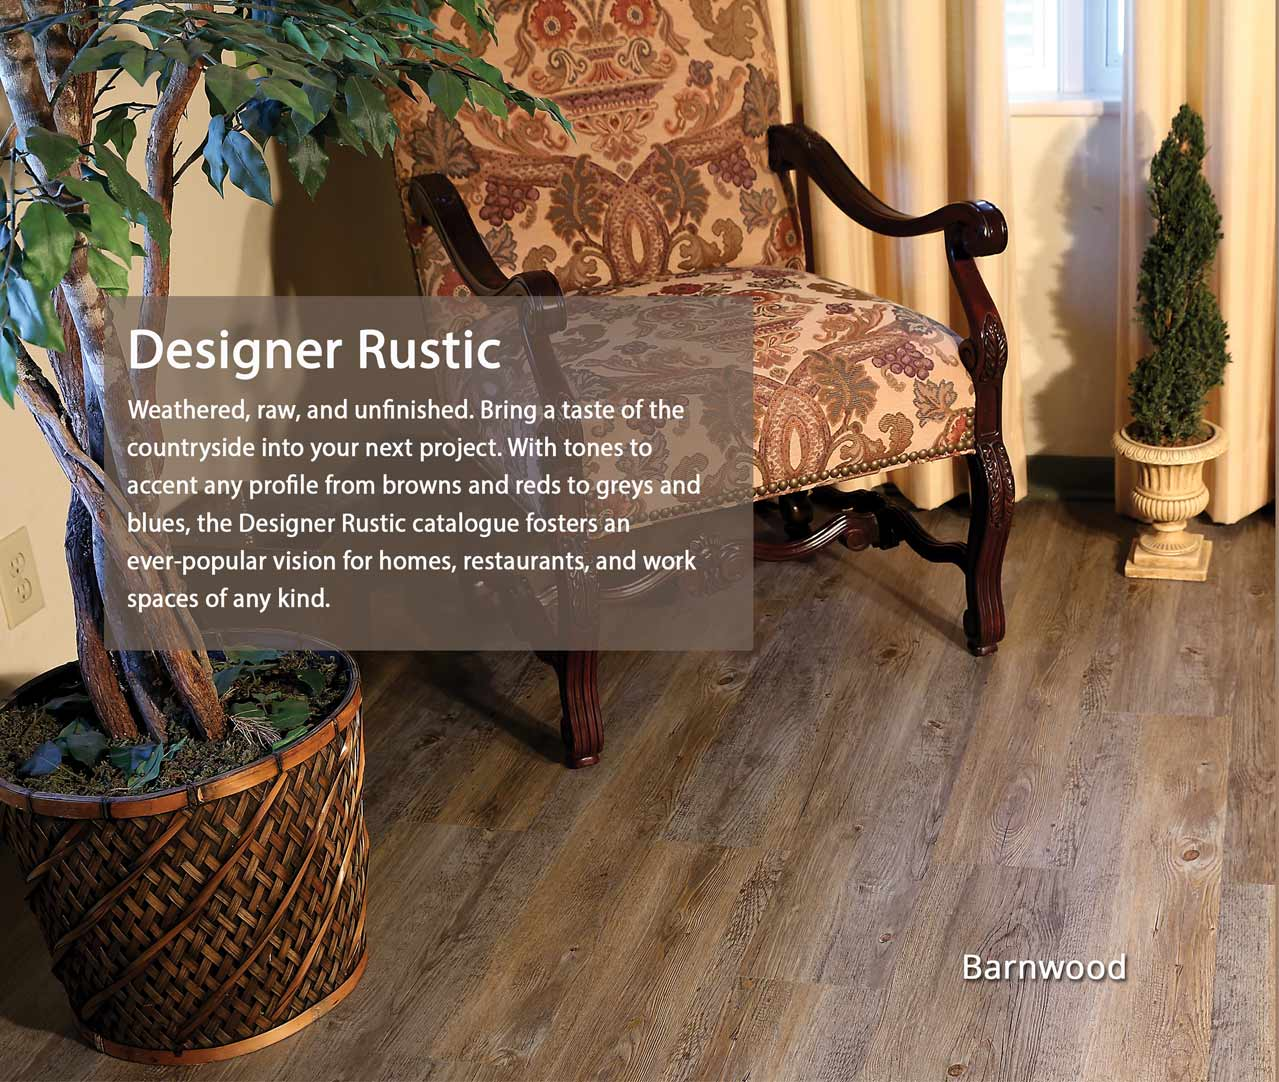 Designer-Rustic-Website-A